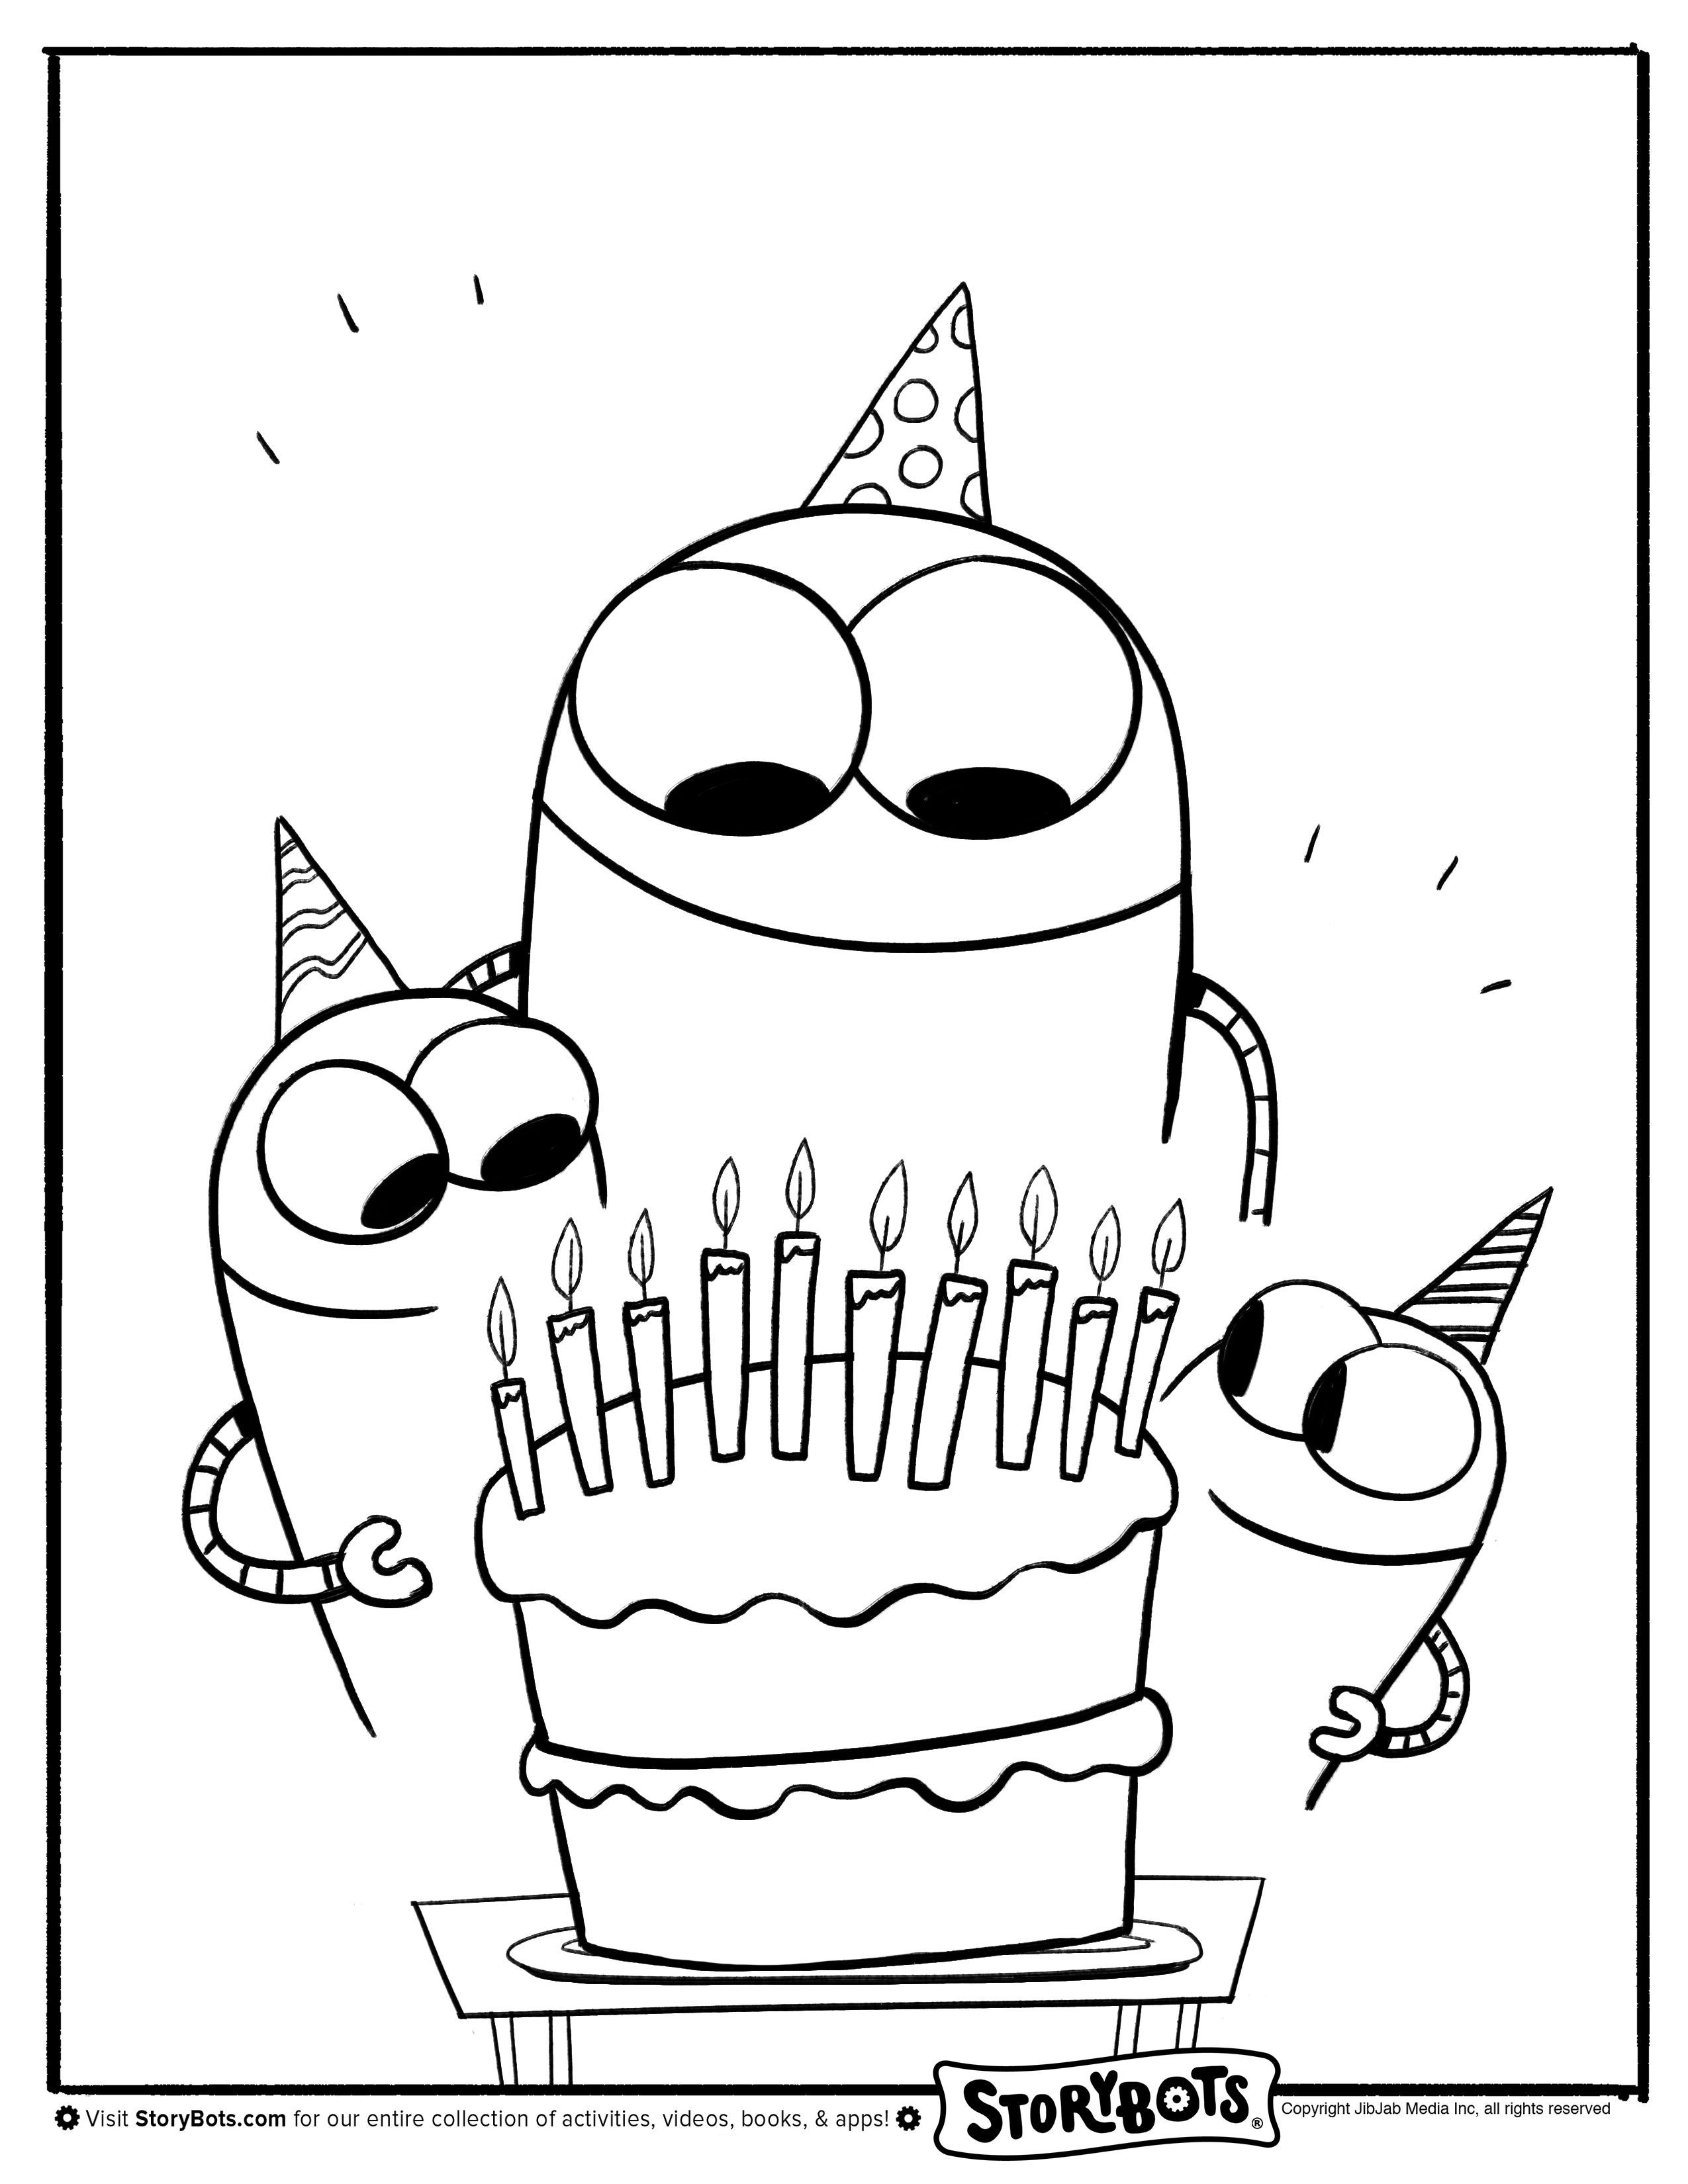 Storybots Coloring Pages - Best Coloring Pages For Kids in ...